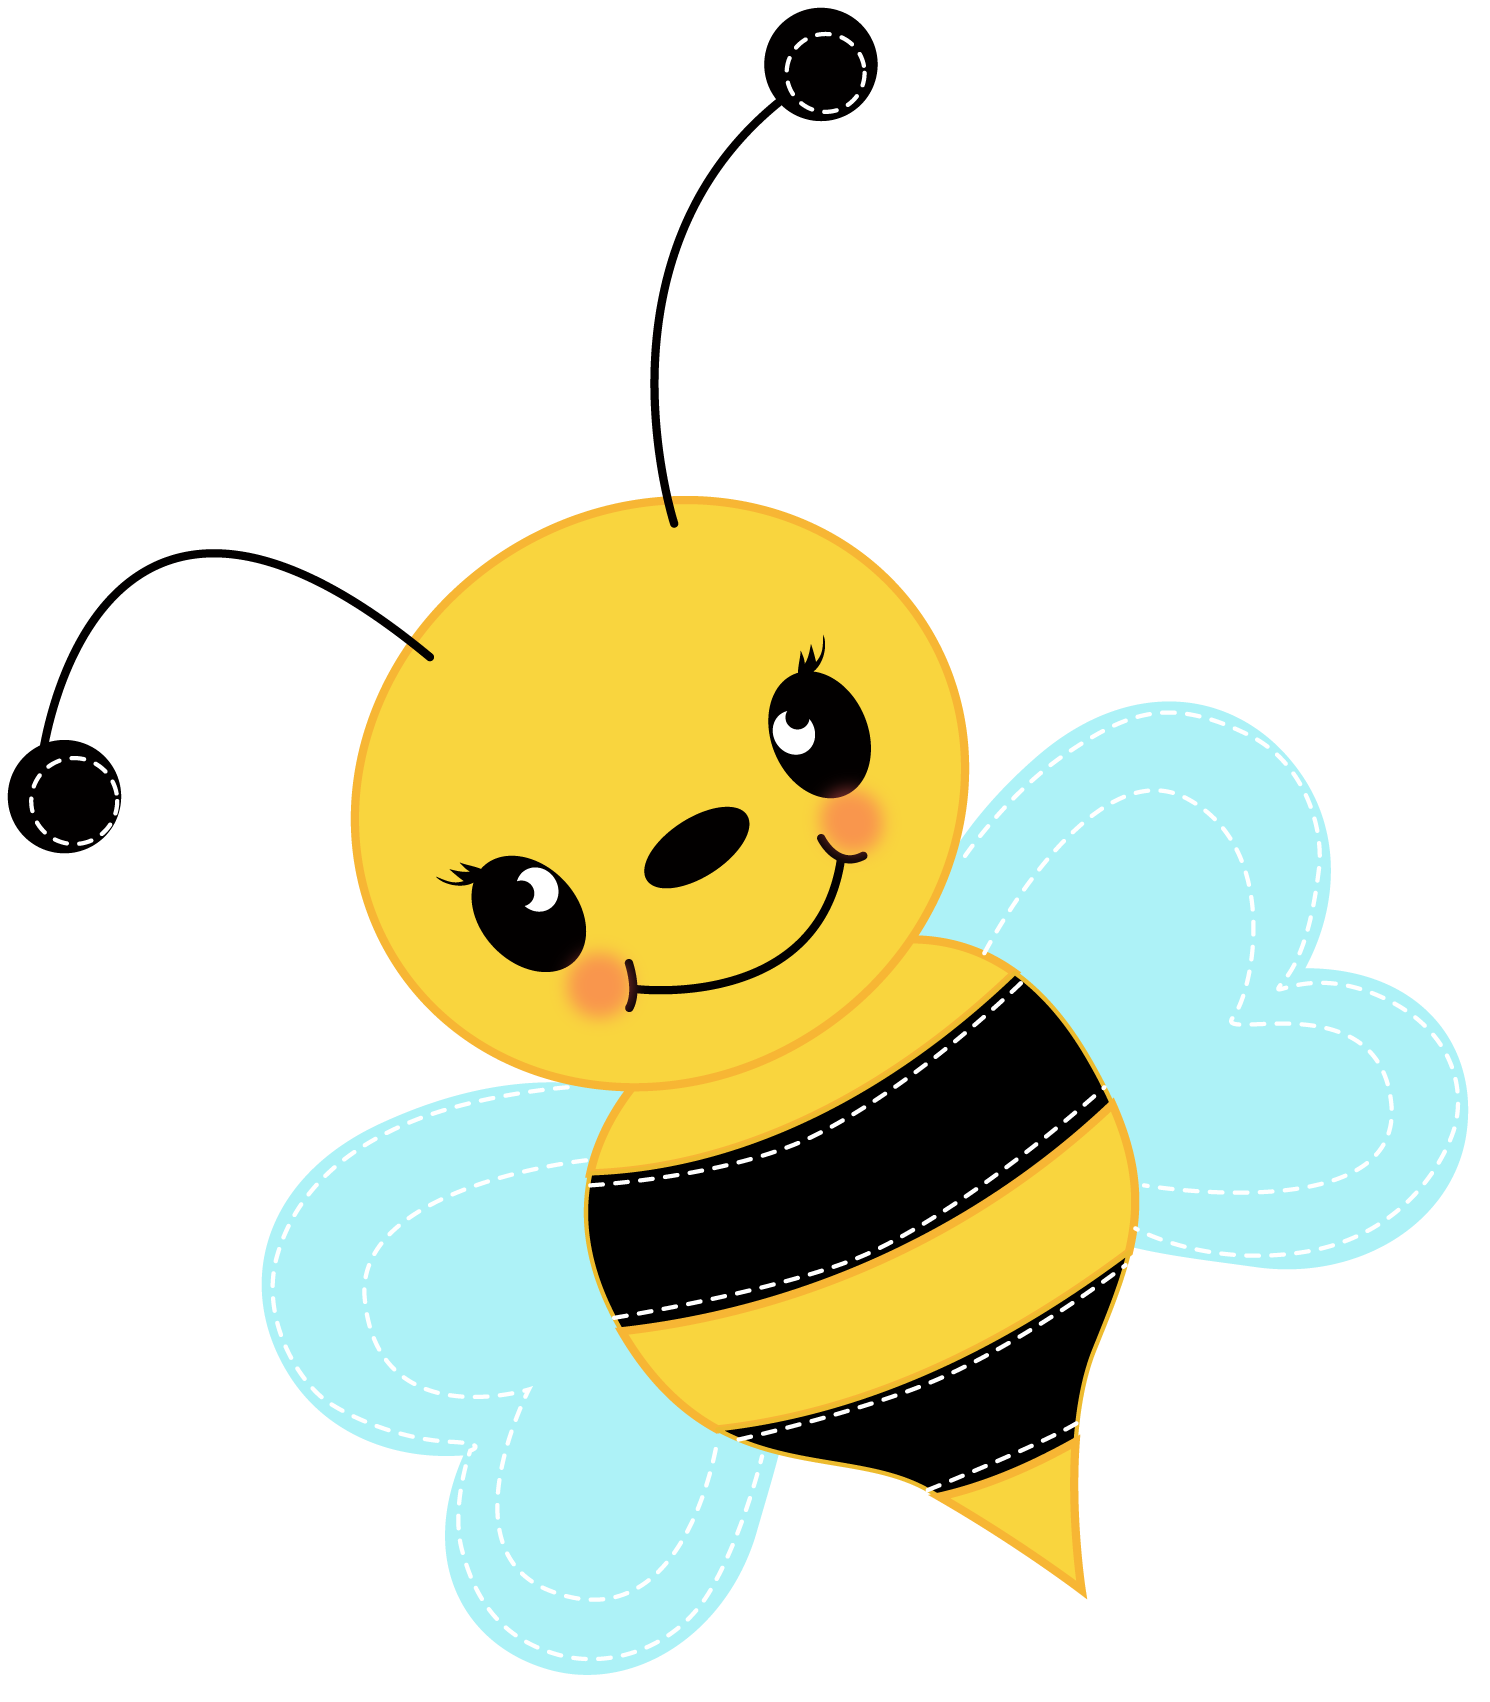 Nickel clipart printable. Imagination art pinterest bees